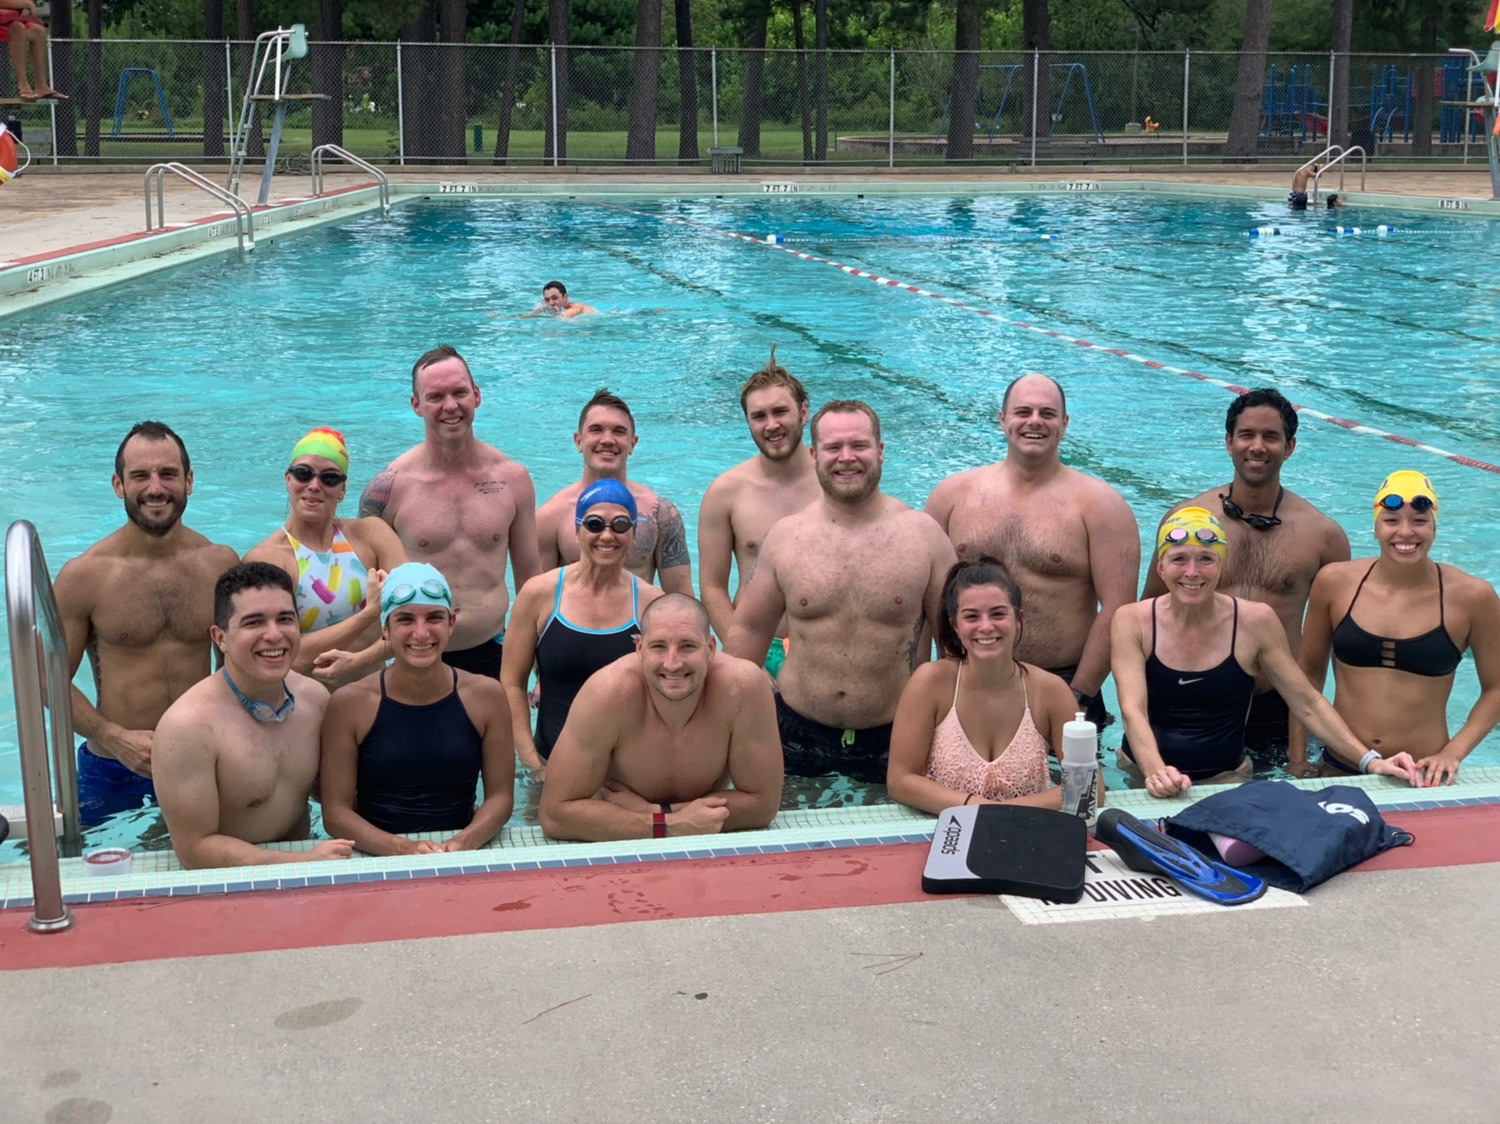 Swim WOD is growing! A great way to get fitness outside of the gym.